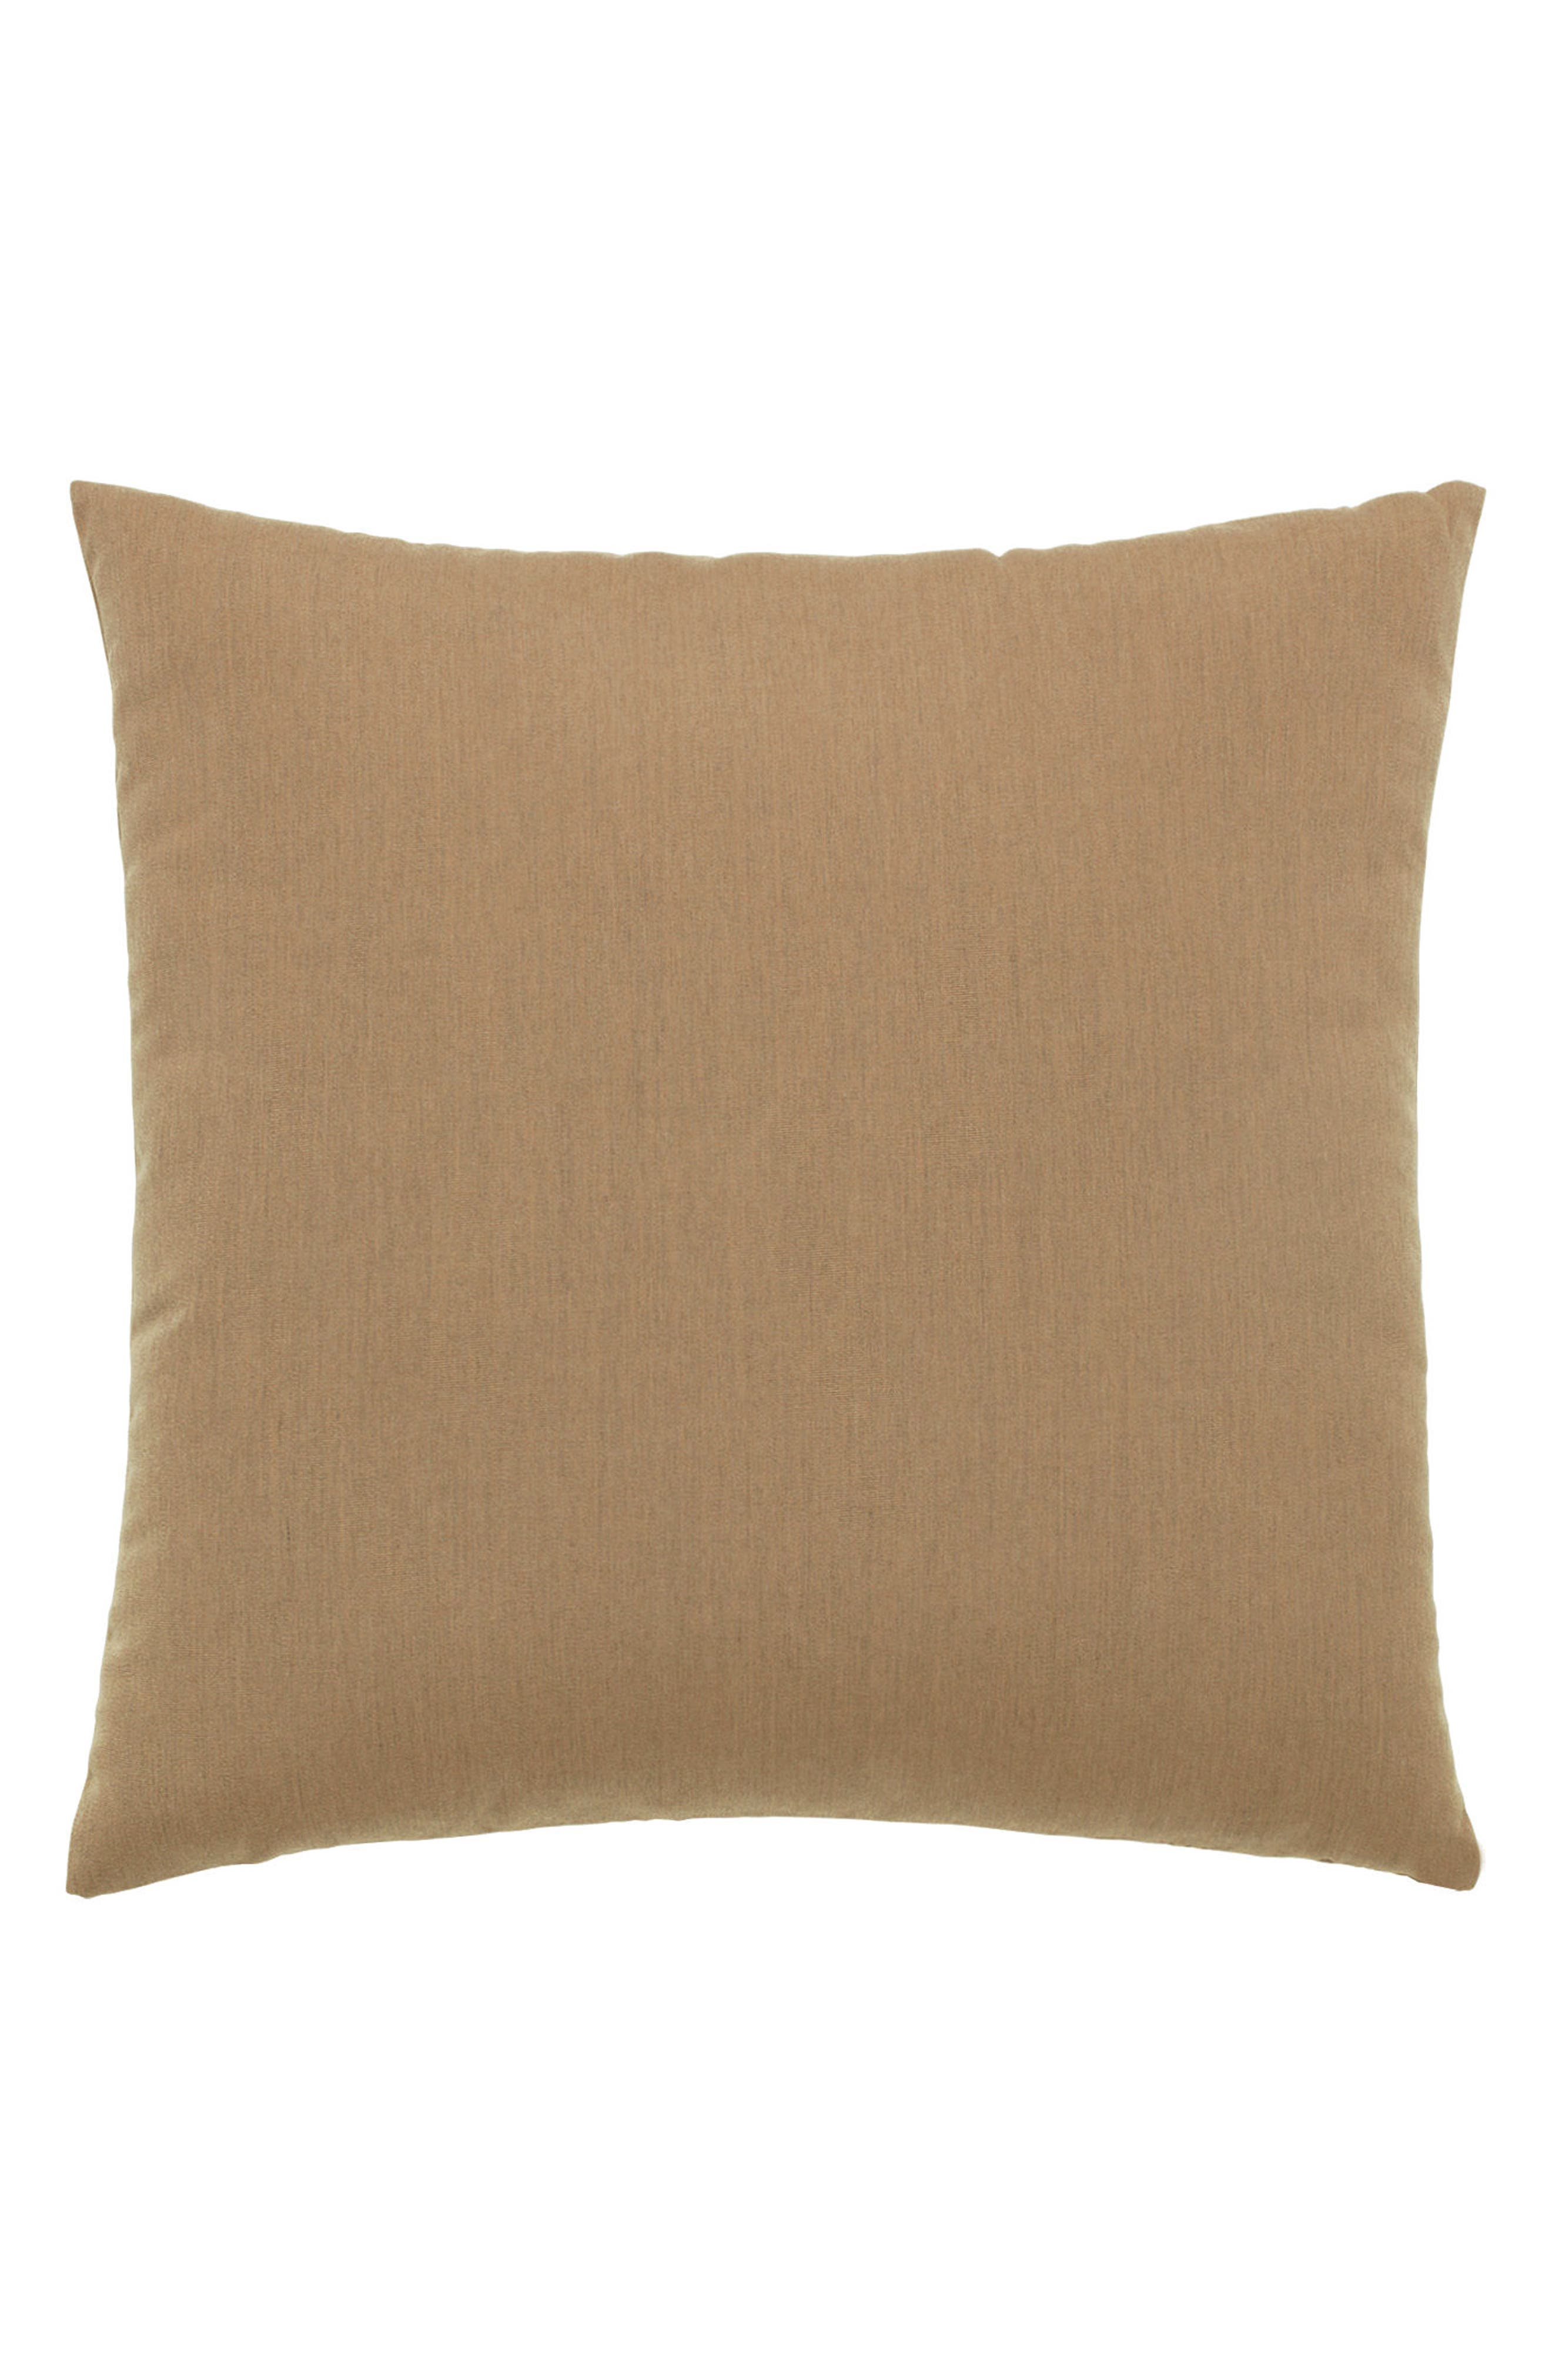 Smoke Basket Weave Indoor/Outdoor Accent Pillow,                             Alternate thumbnail 2, color,                             BROWN/ GREY